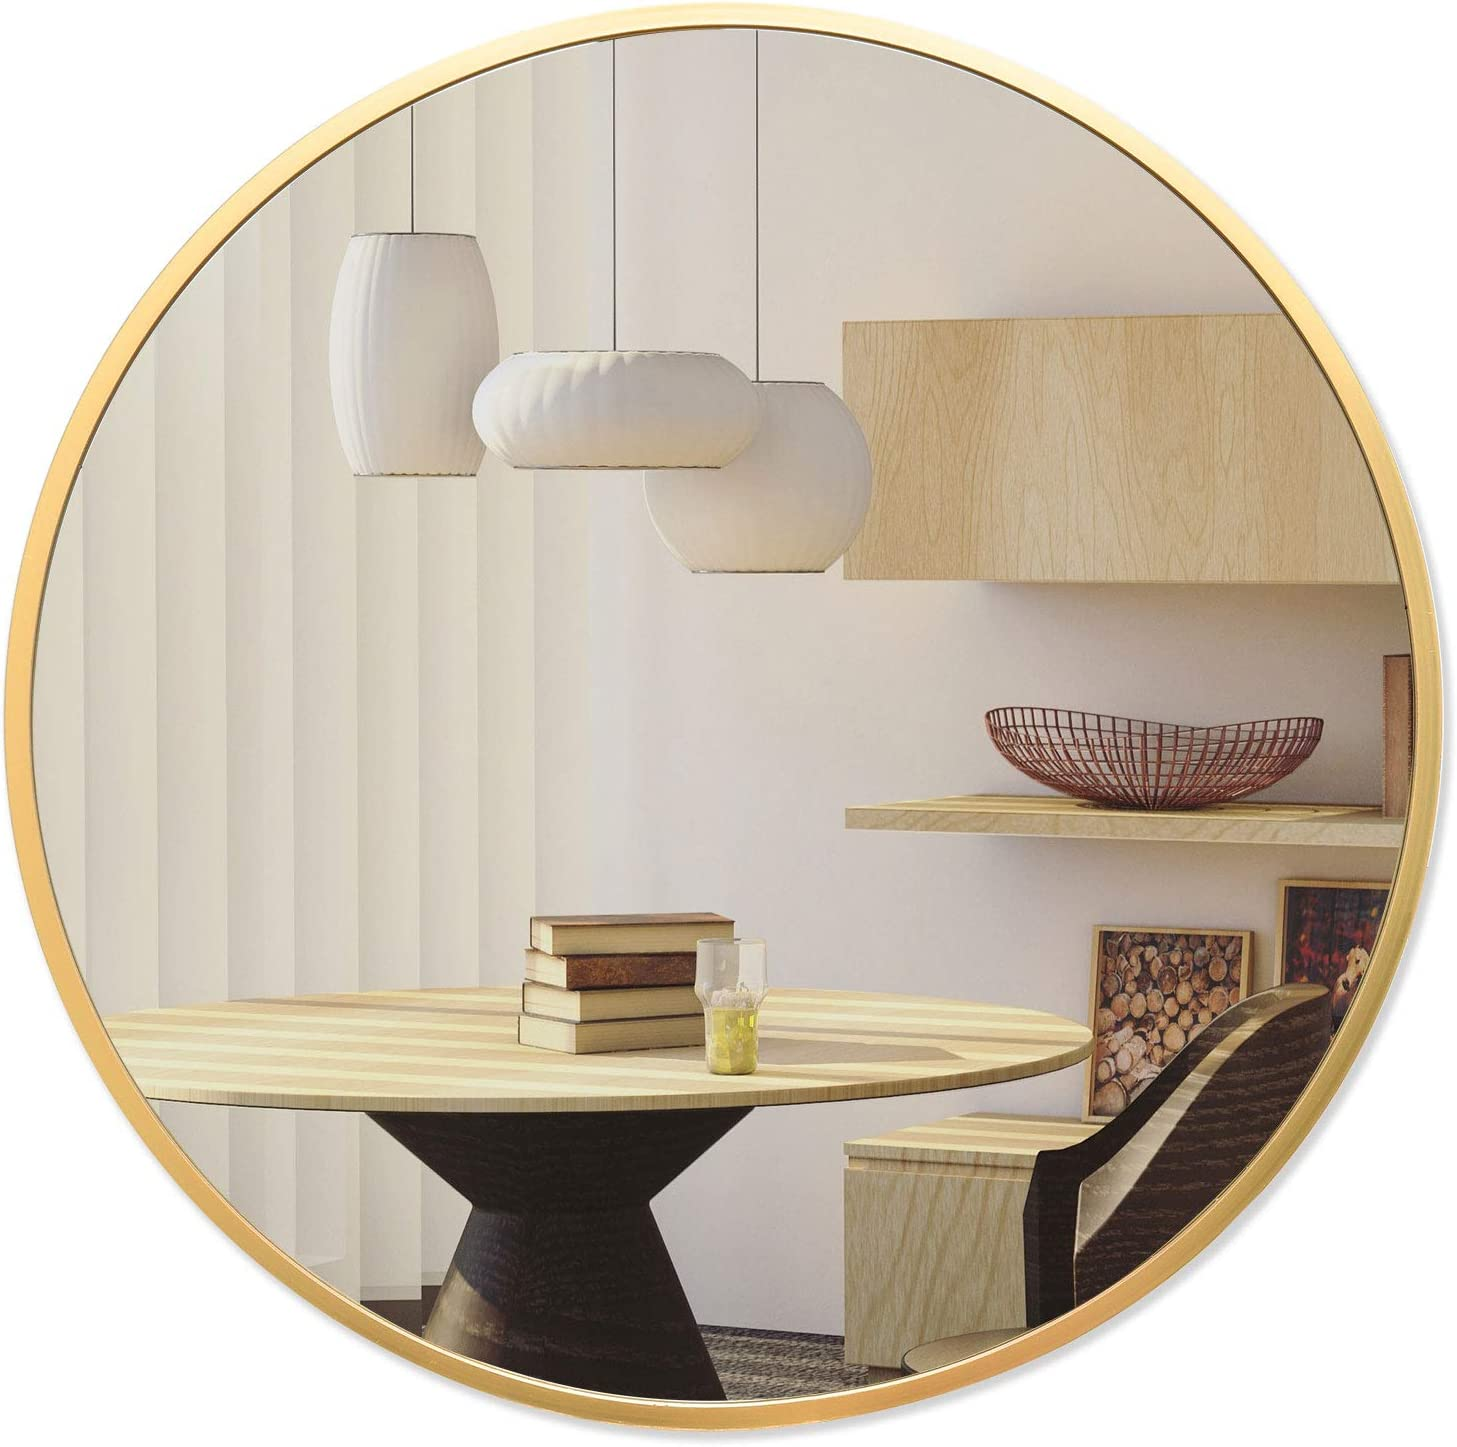 BEAUTYPEAK Circle Mirror Gold 30 Inch Wall Mounted Round Mirror with Brushed Metal Frame for Bathroom, Vanity, Living Room, Bedroom, Entryway Wall Decor (Gold, 30 Inches)